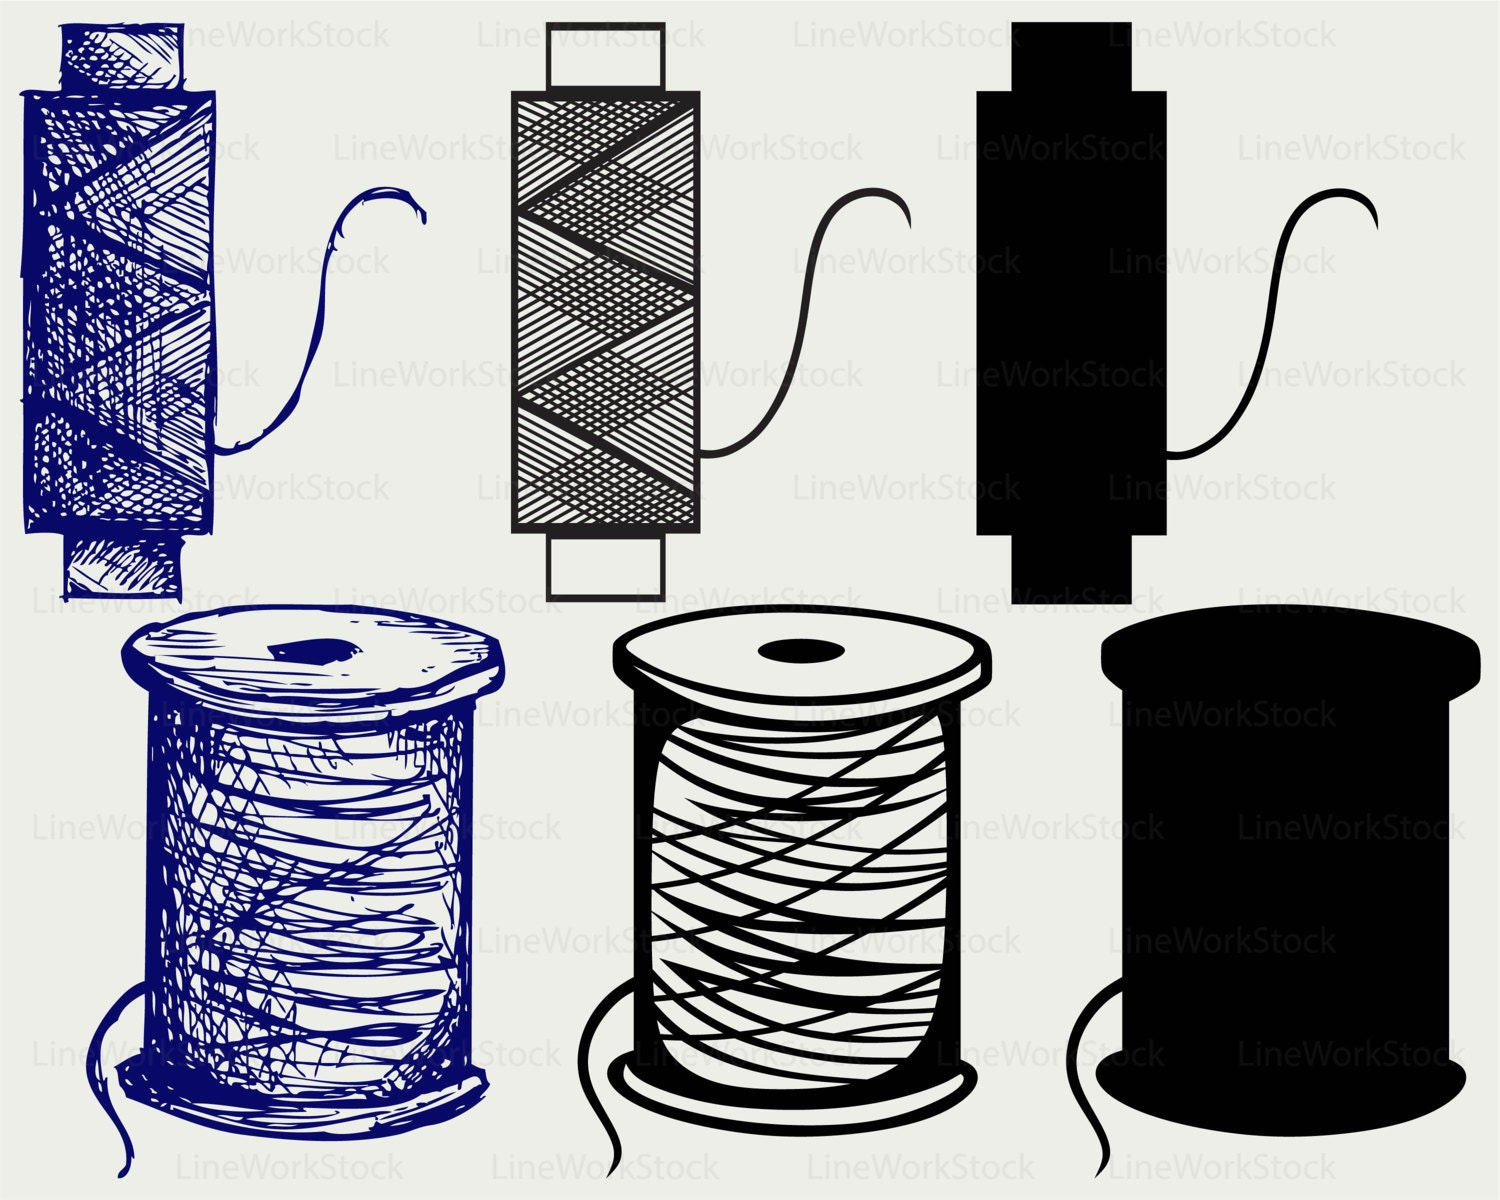 Spool threads svg/threads clipart/svg/threads silhouette/spool | Etsy